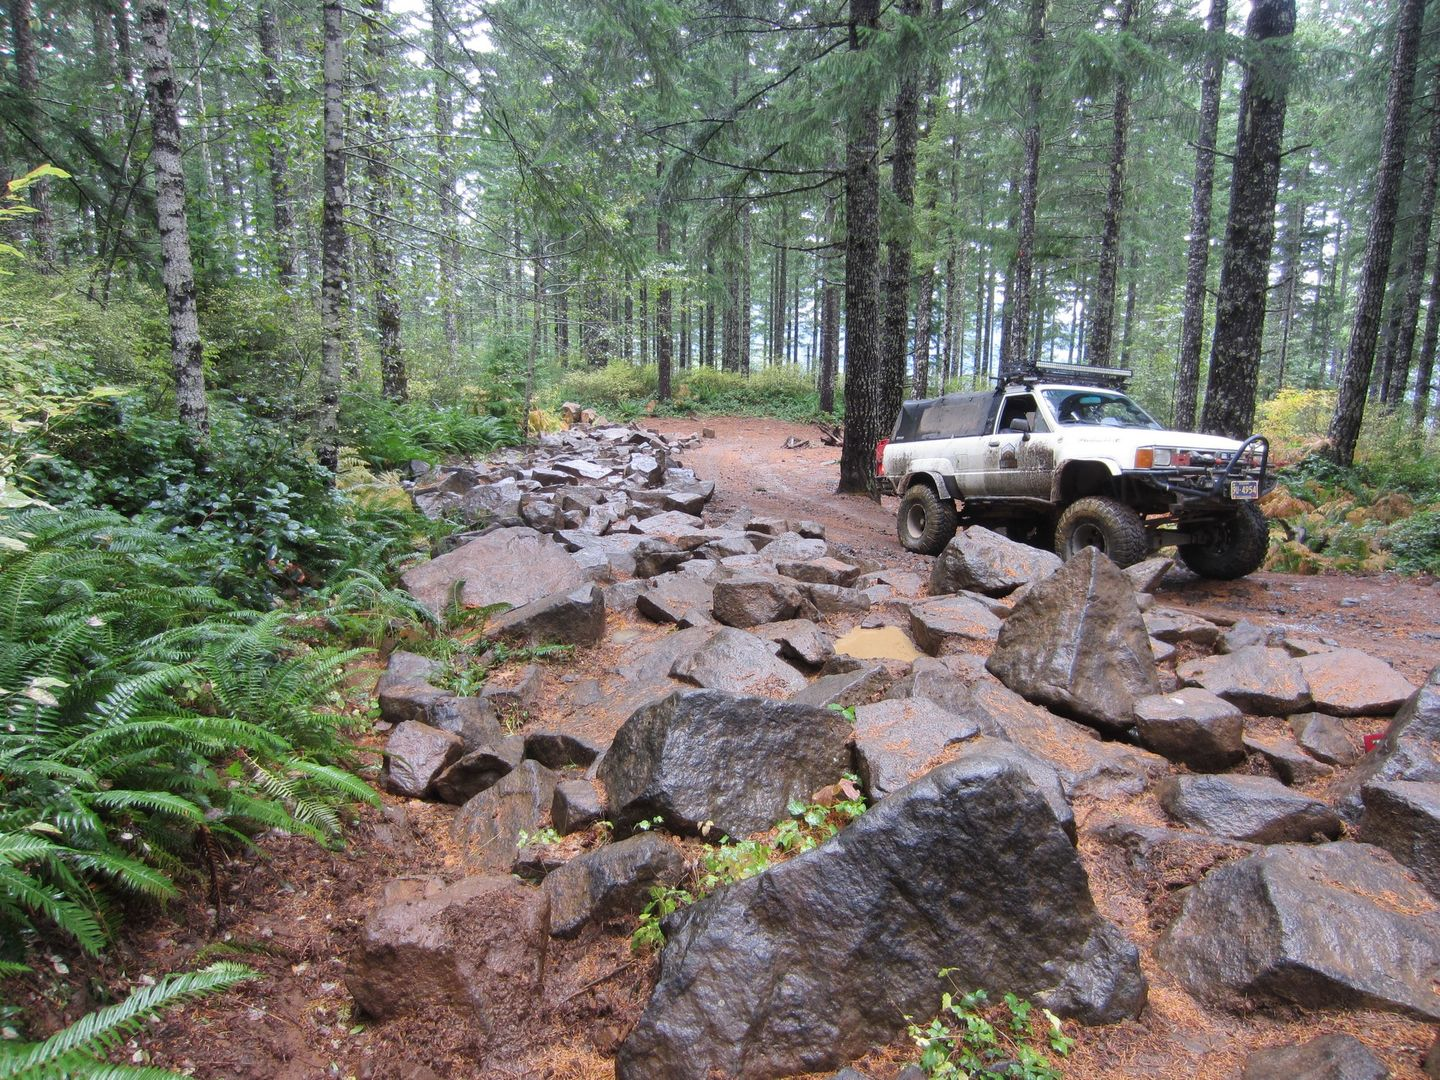 Firebreak Five / Tillamook State Forest - Waypoint 5: Optional Rock Garden Play Area